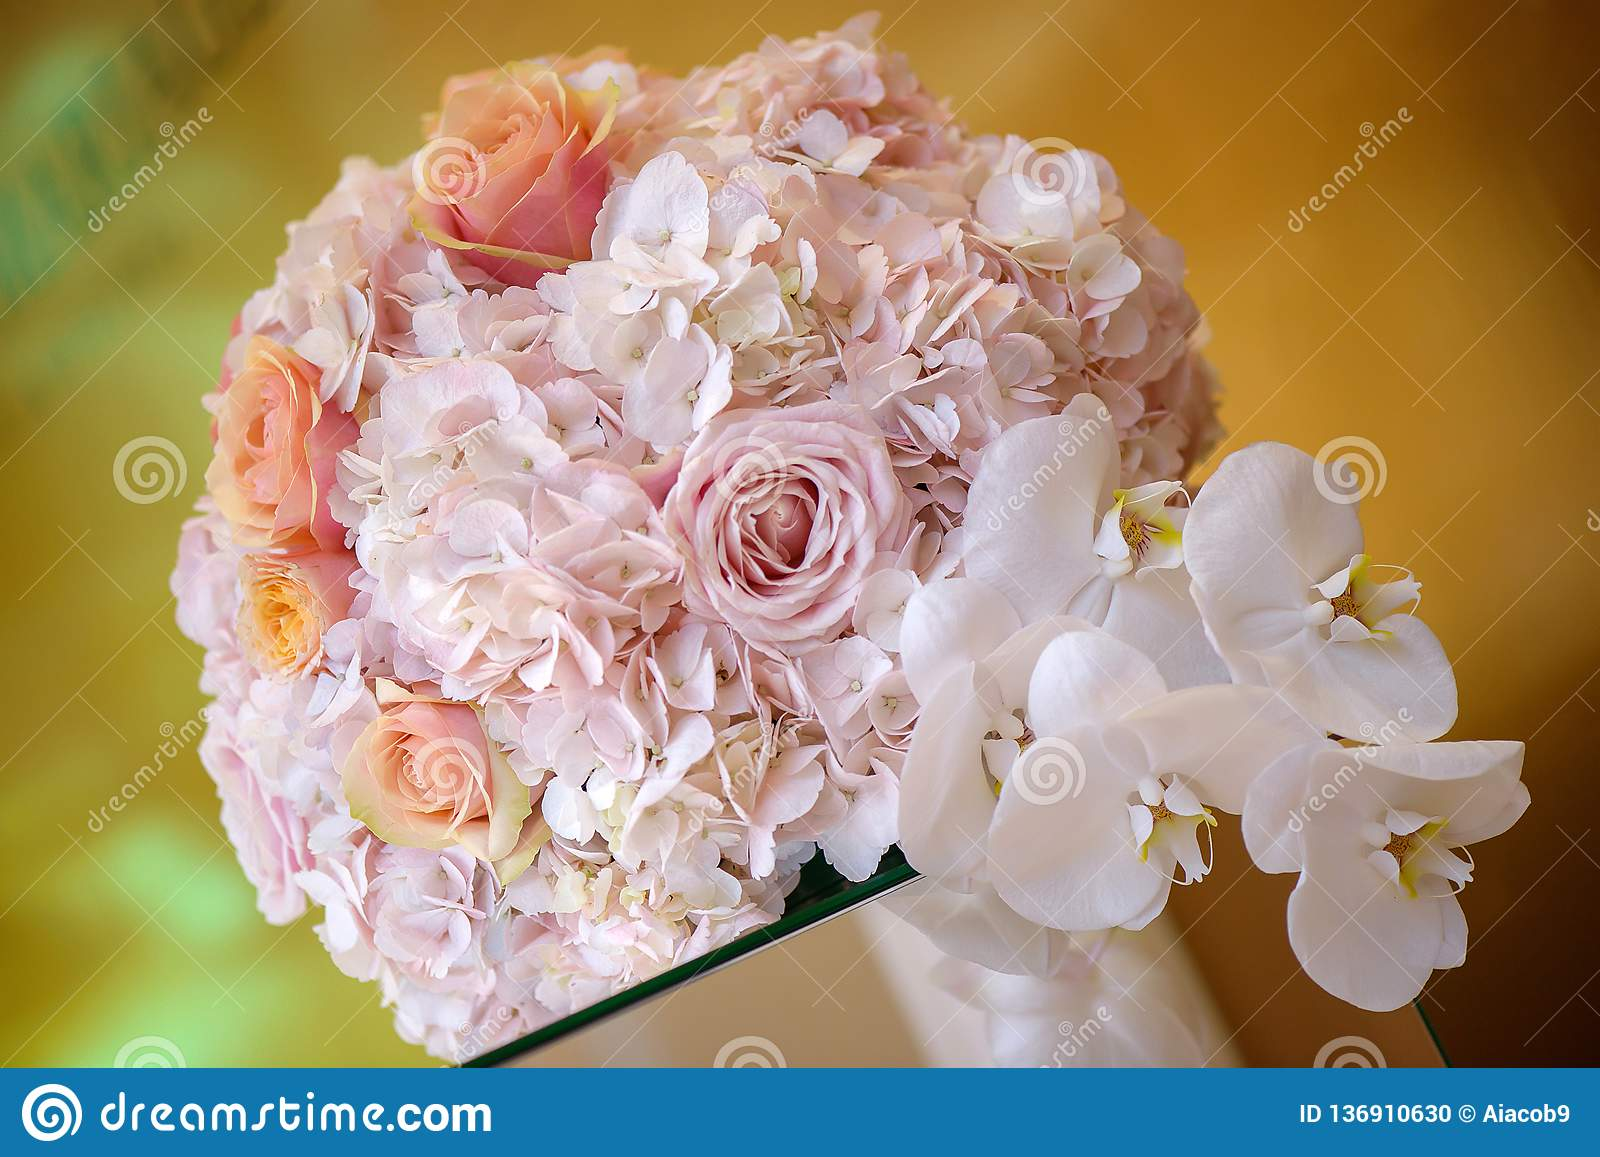 Classy floral arrangement in a pastel round bouquet featuring pink hydrangea roses and orchids